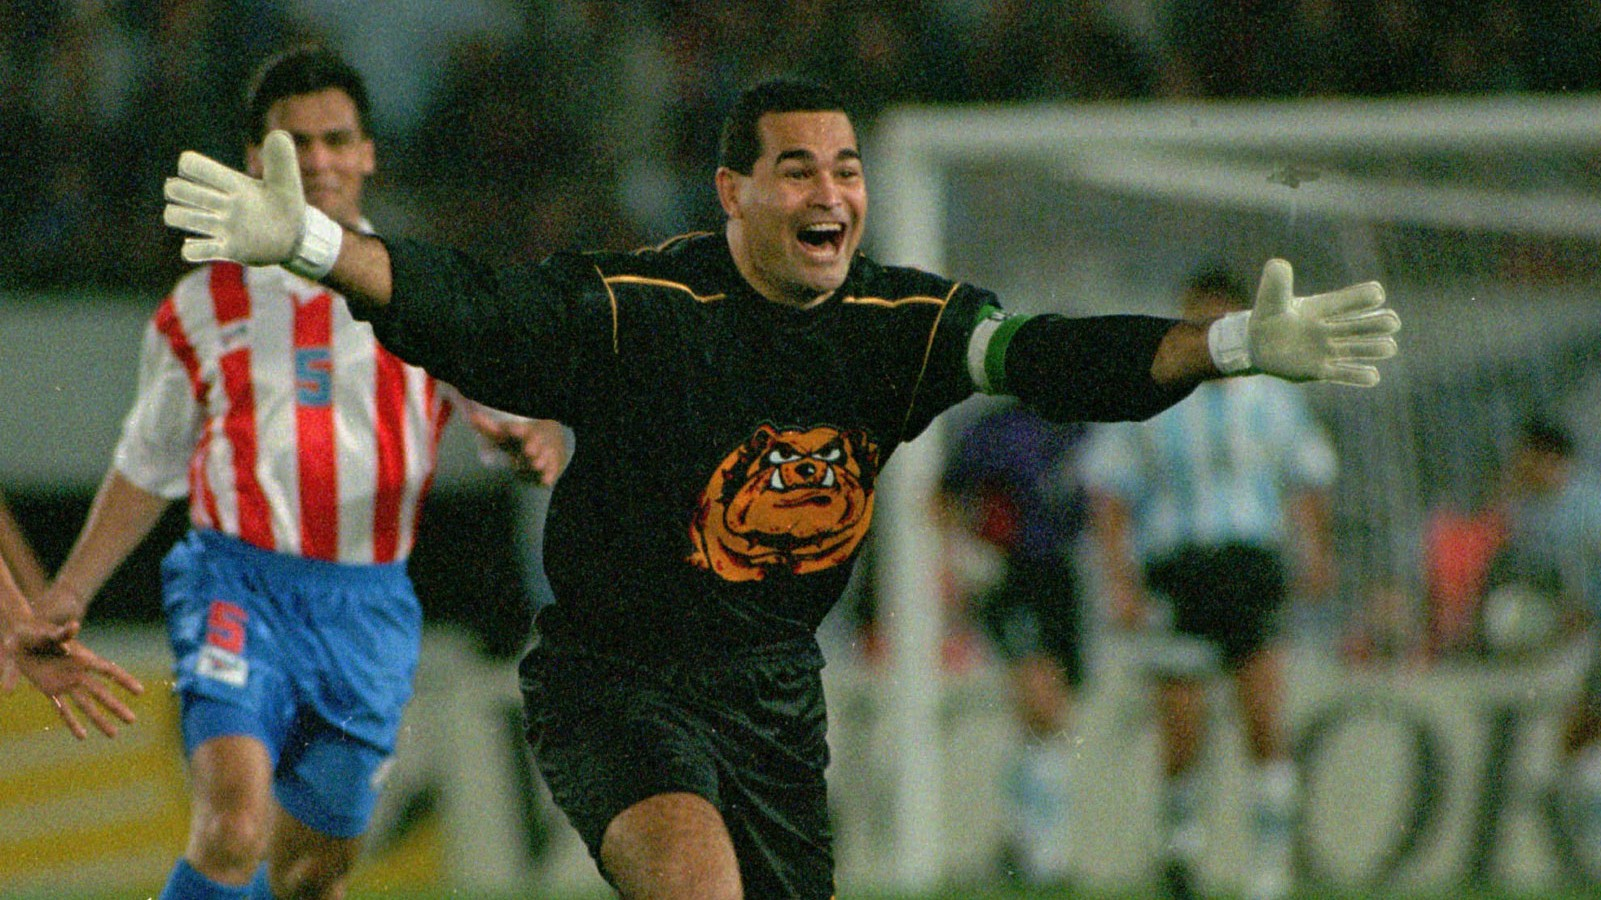 Paraguayan goalkeeper Jose Luis Chilavert running jubilant after marking his goal during qualifying match for France 98 play in Buenos Aires Sunday Sept.1,1996. Argentina and paraguay tied 1-1.(AP Photo/Daniel Muzio)